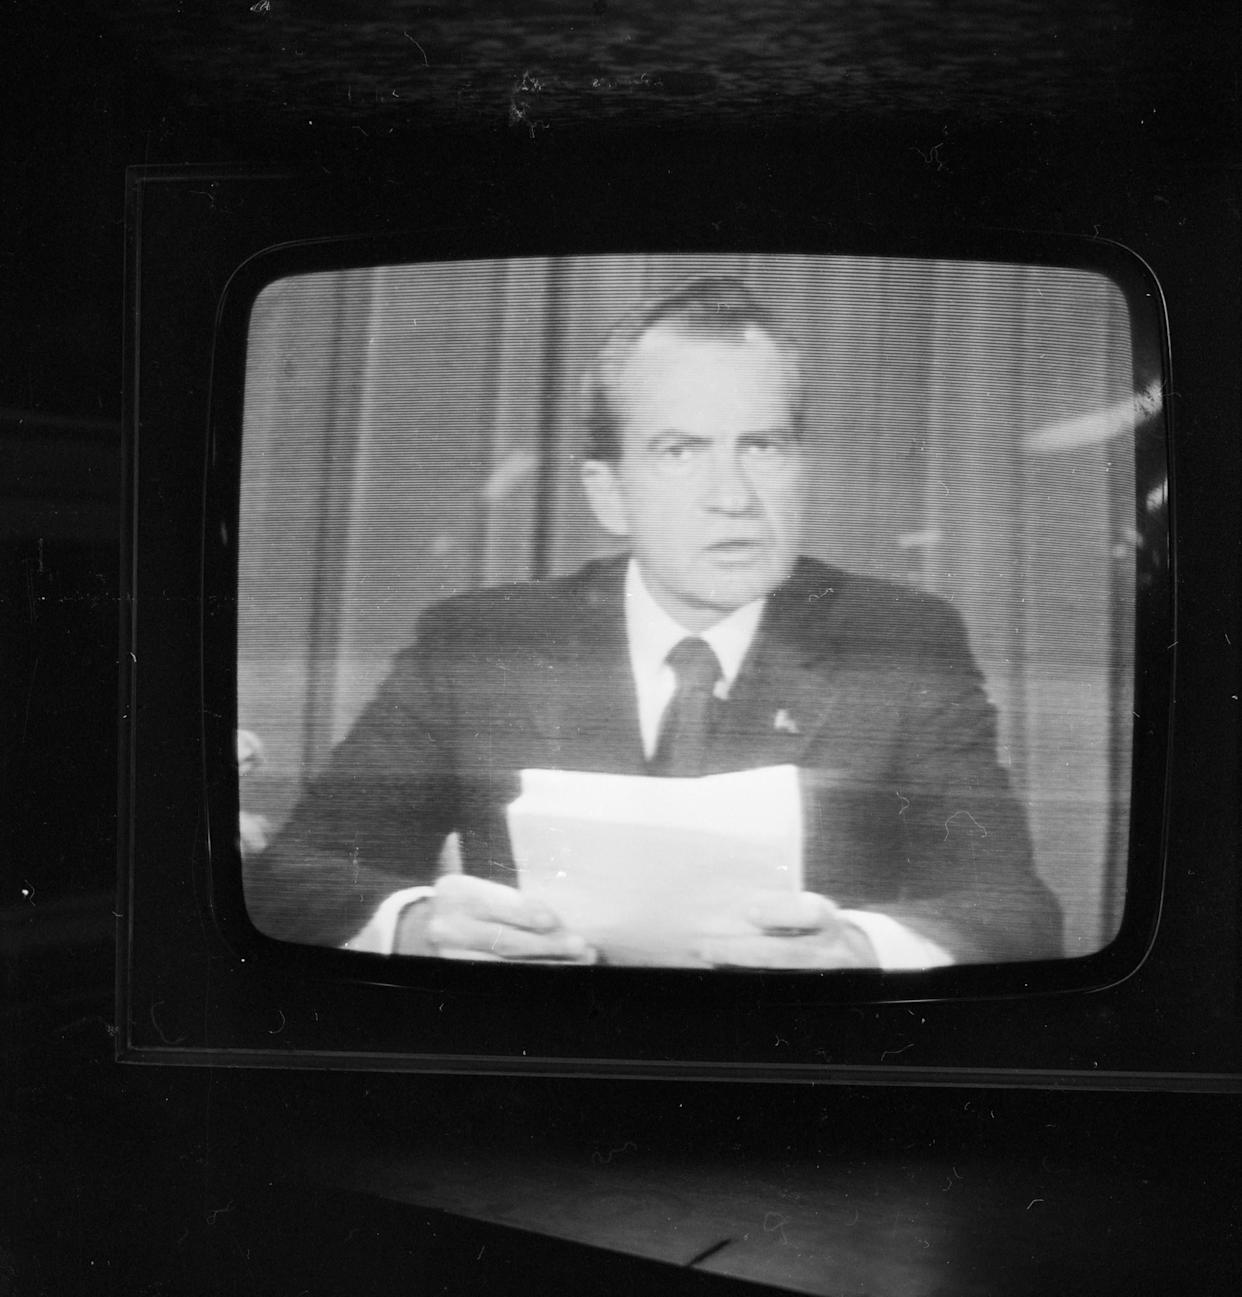 8th August 1974: American president Richard Nixon (1913 - 1994) announces his resignation on national television, following the Watergate scandal. (Photo by Pierre Manevy/Express/Getty Images)